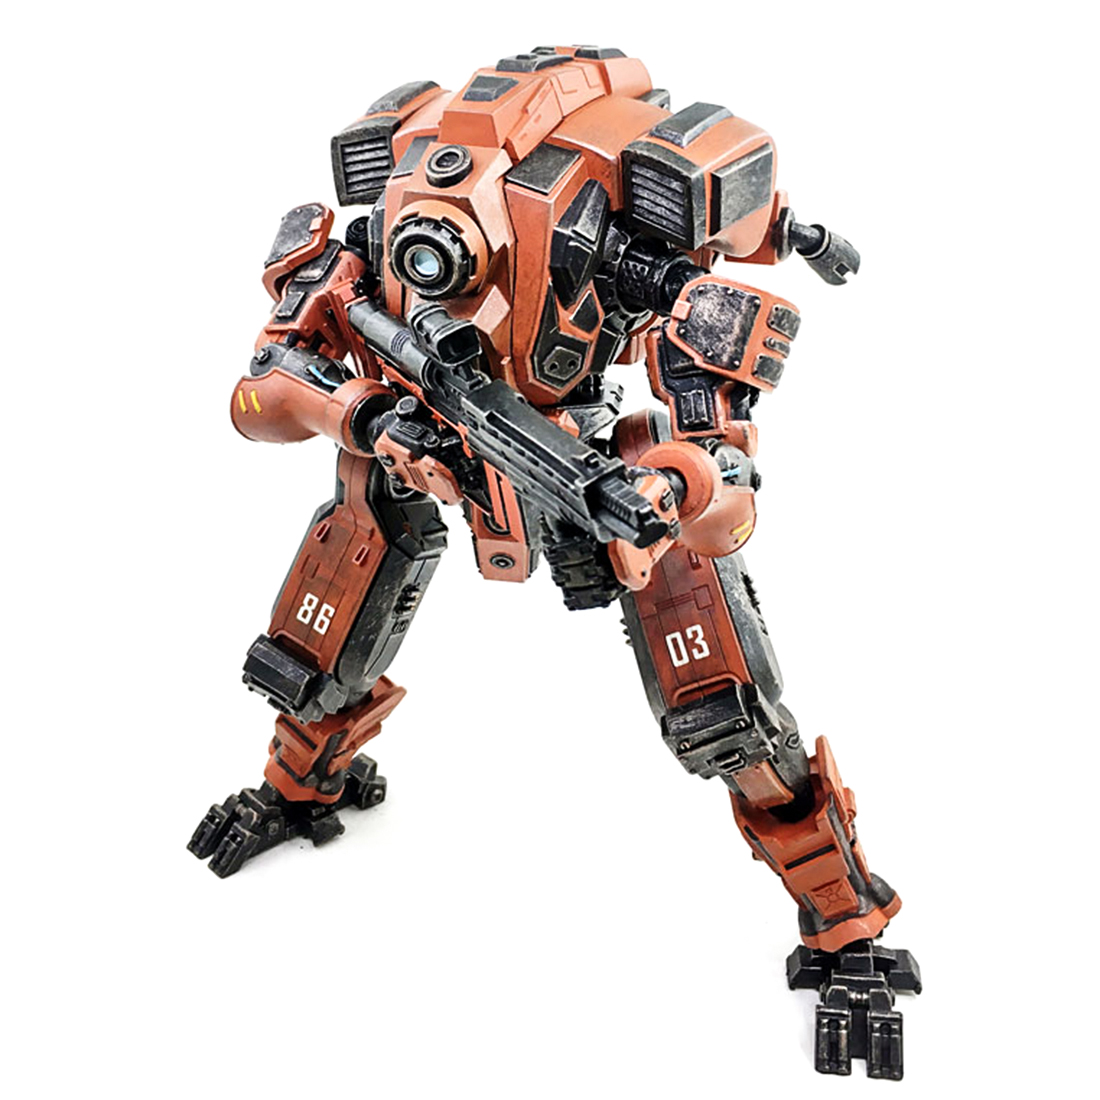 Mecha Model Xing Tian DIY 3D Assembly Fine Soldier Model with High Degree of Reduction for Home Decor Boys Birthday Gift 2019